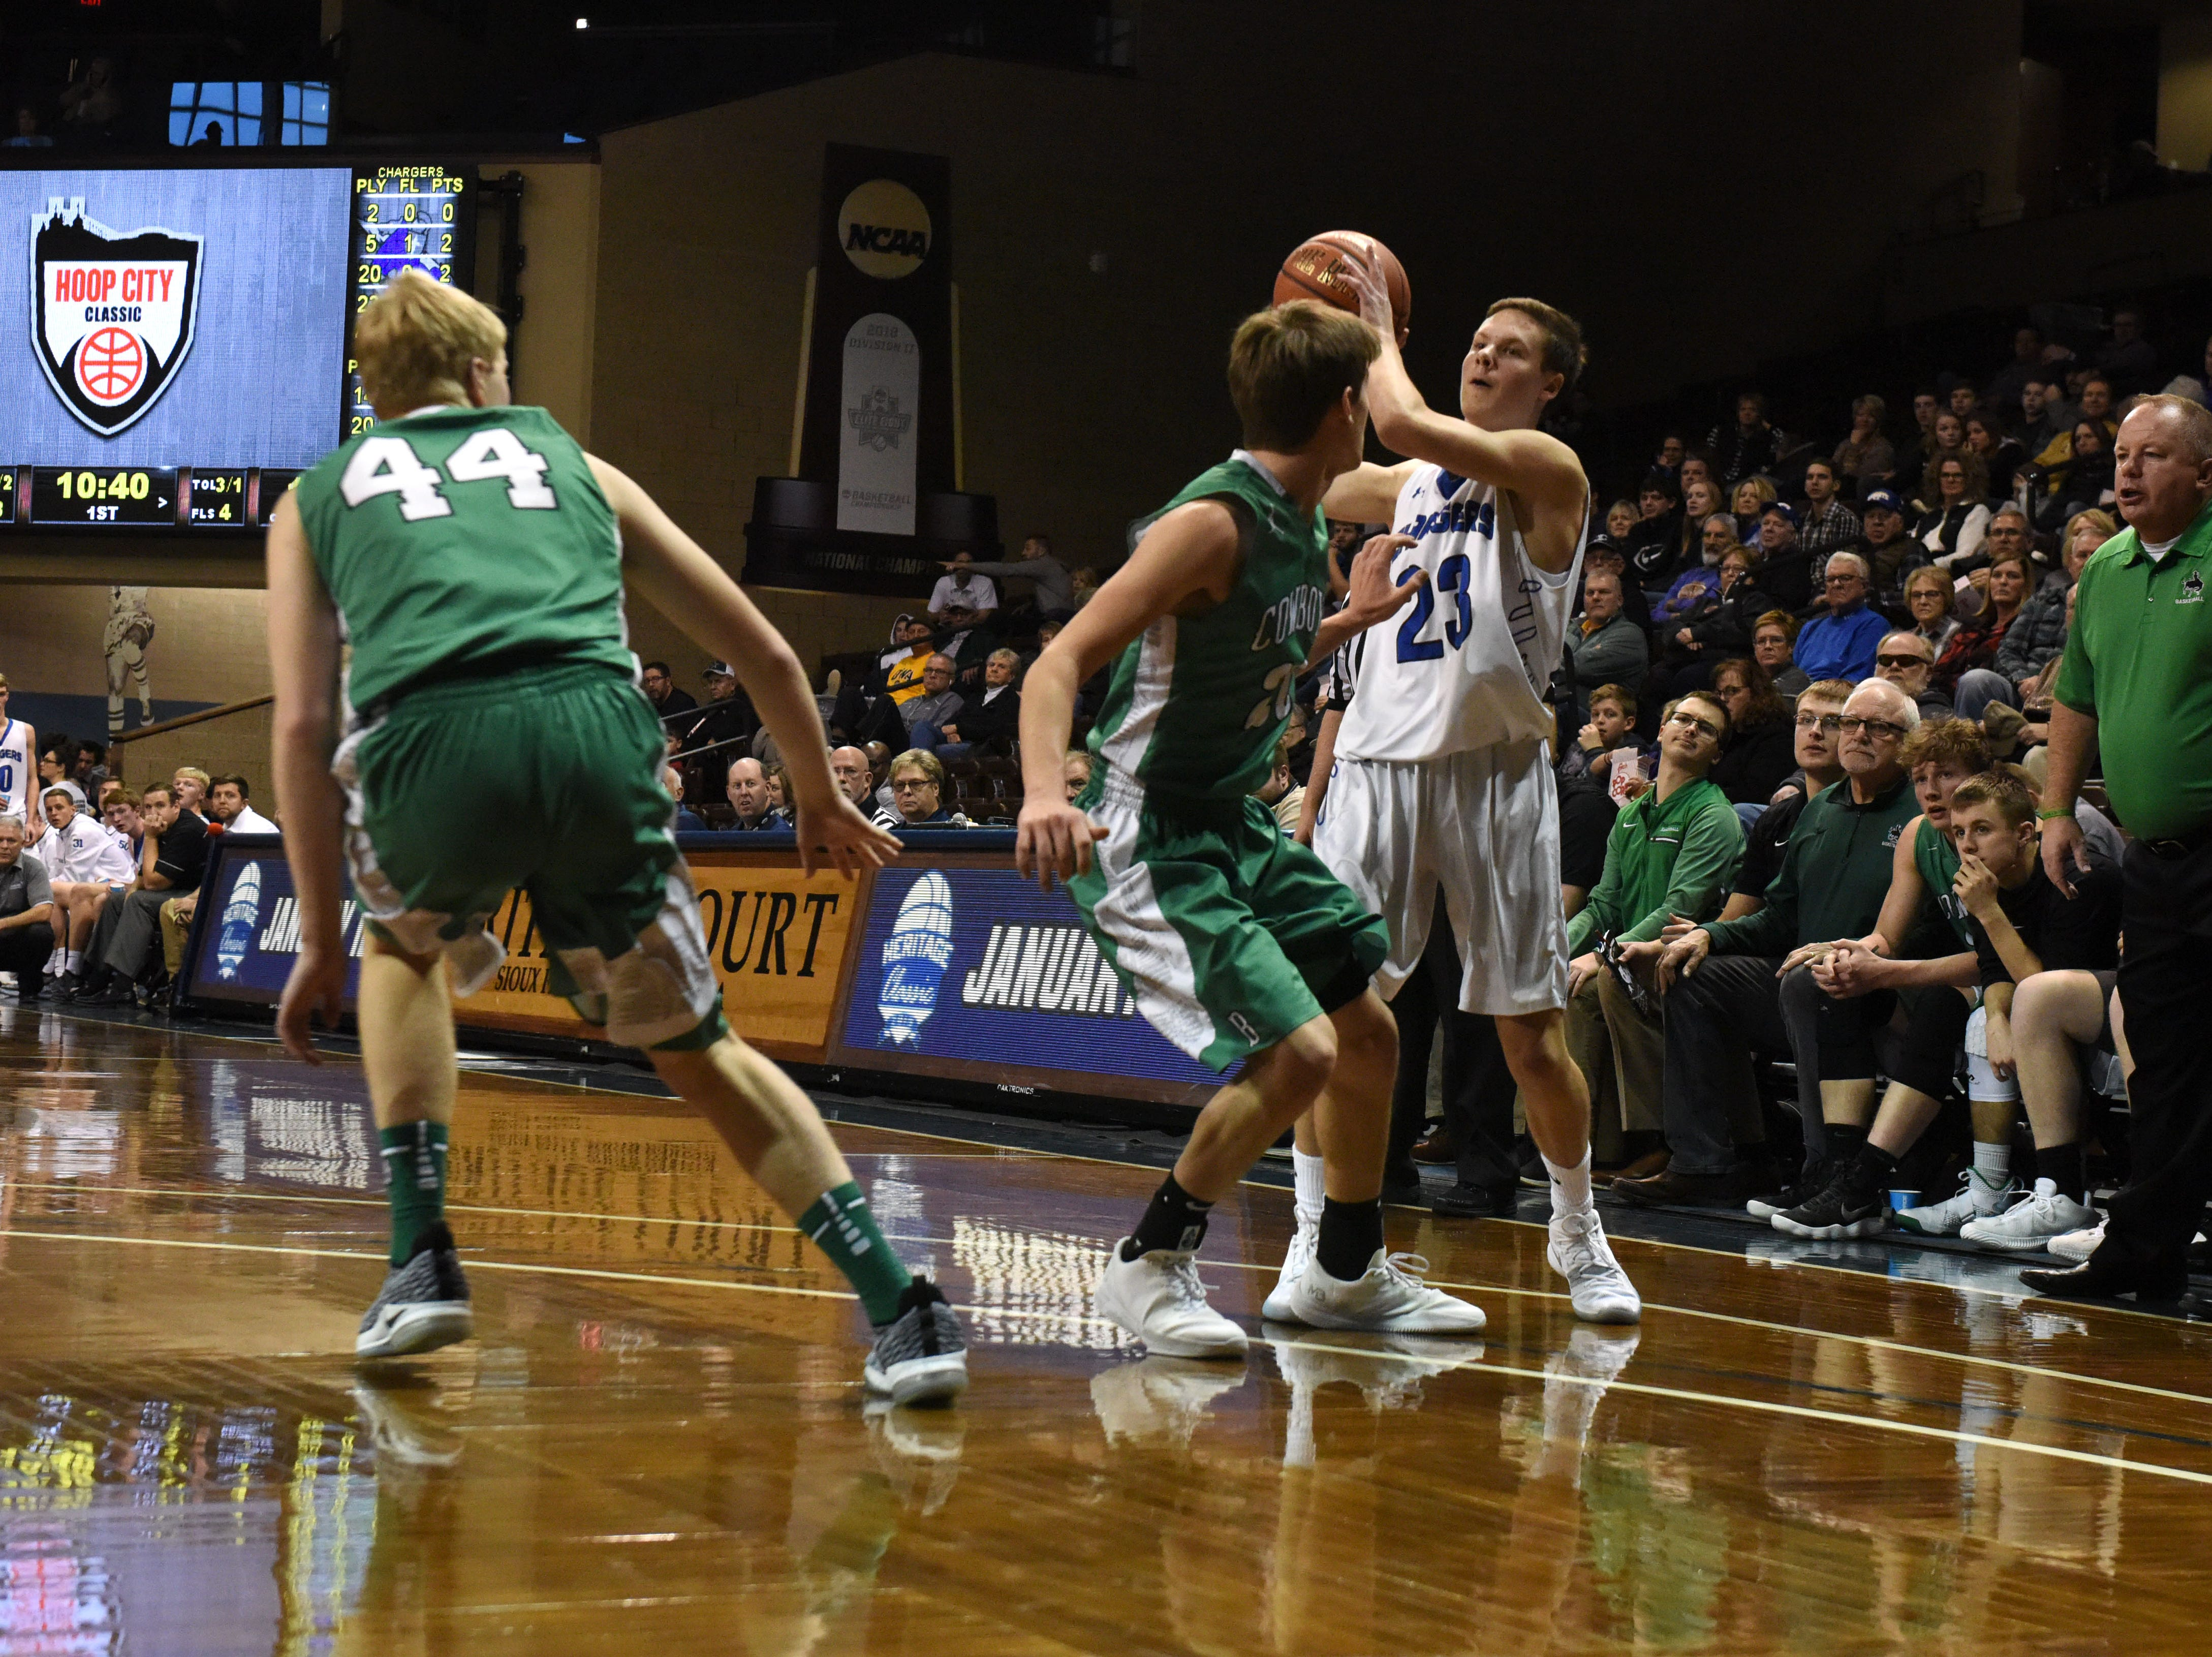 Sioux Falls Christian's Xavier Van Beek (23) looks to pass the ball during a game against Breckenridge at the Hoop City Classic at the Sanford Pentagon in Sioux Falls, S.D., Saturday, Dec. 29, 2018.